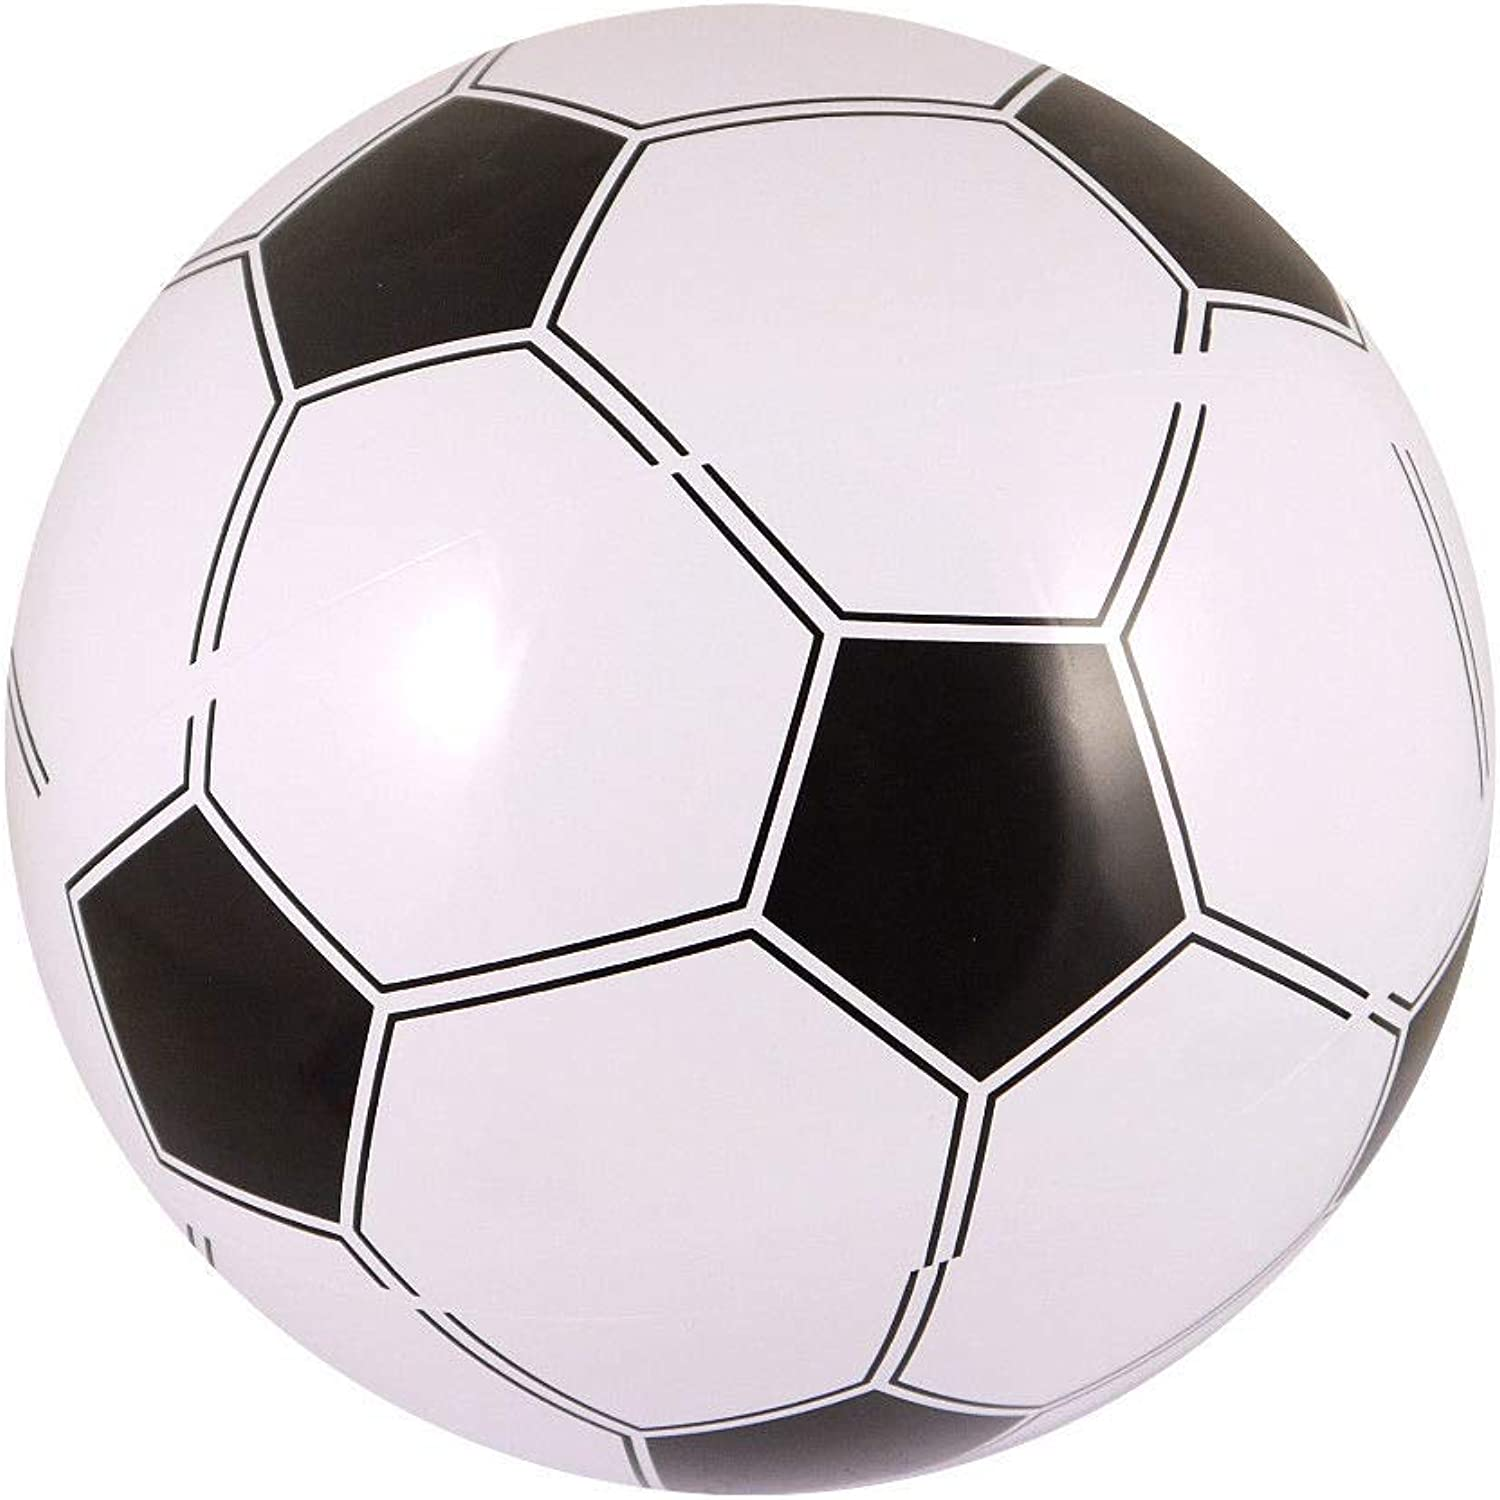 Inflatable 60cm Trophy /& Football Blow up Fancy Dress World Cup Sports Soccer Boys Beach Ball Party